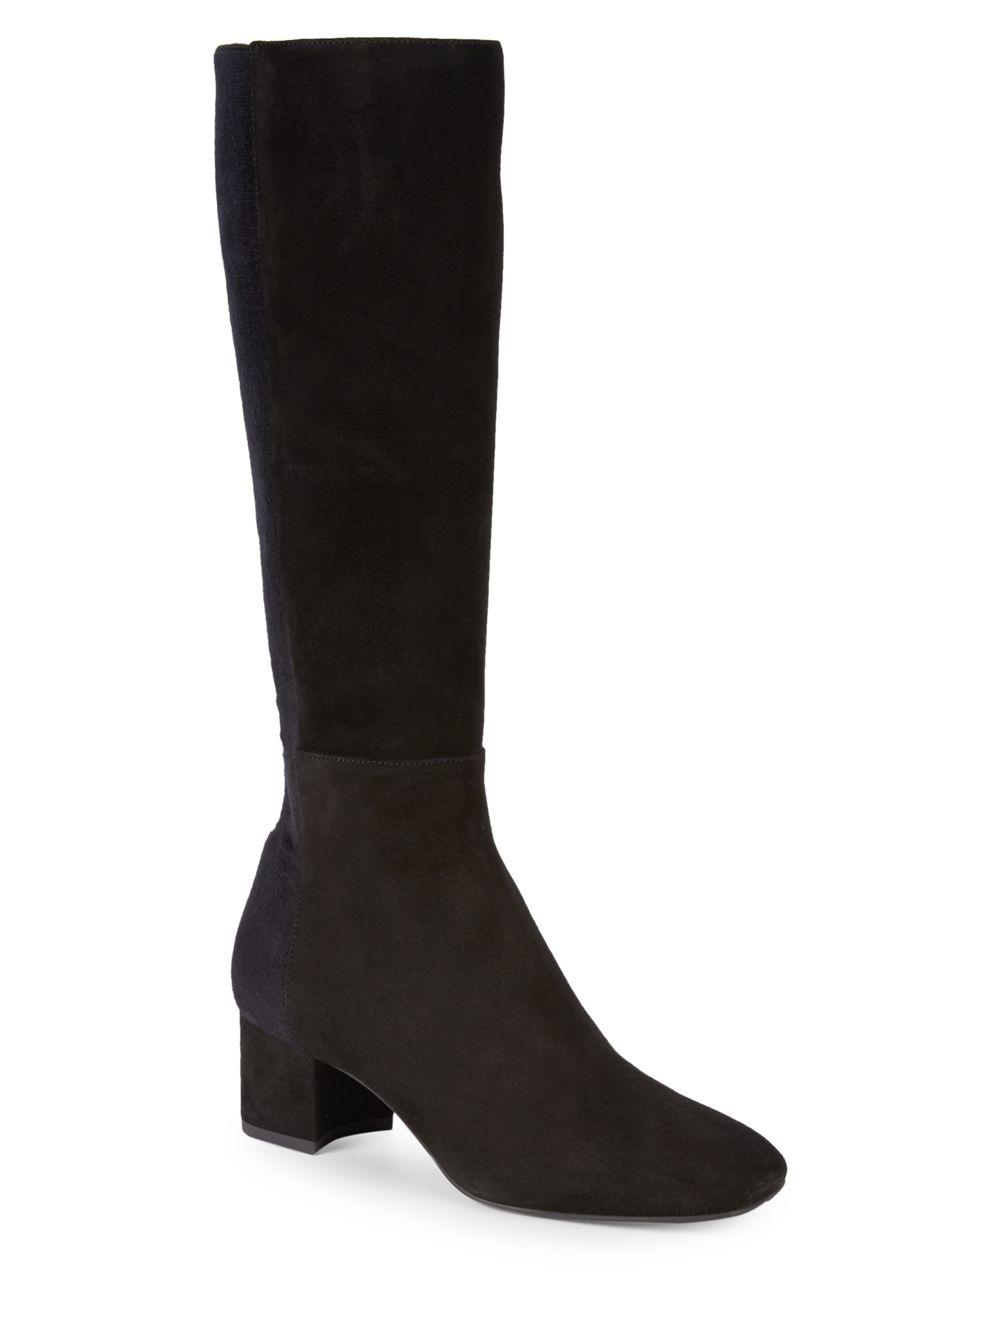 86387a313ec Black Suede Dress Boots - Dress Foto and Picture